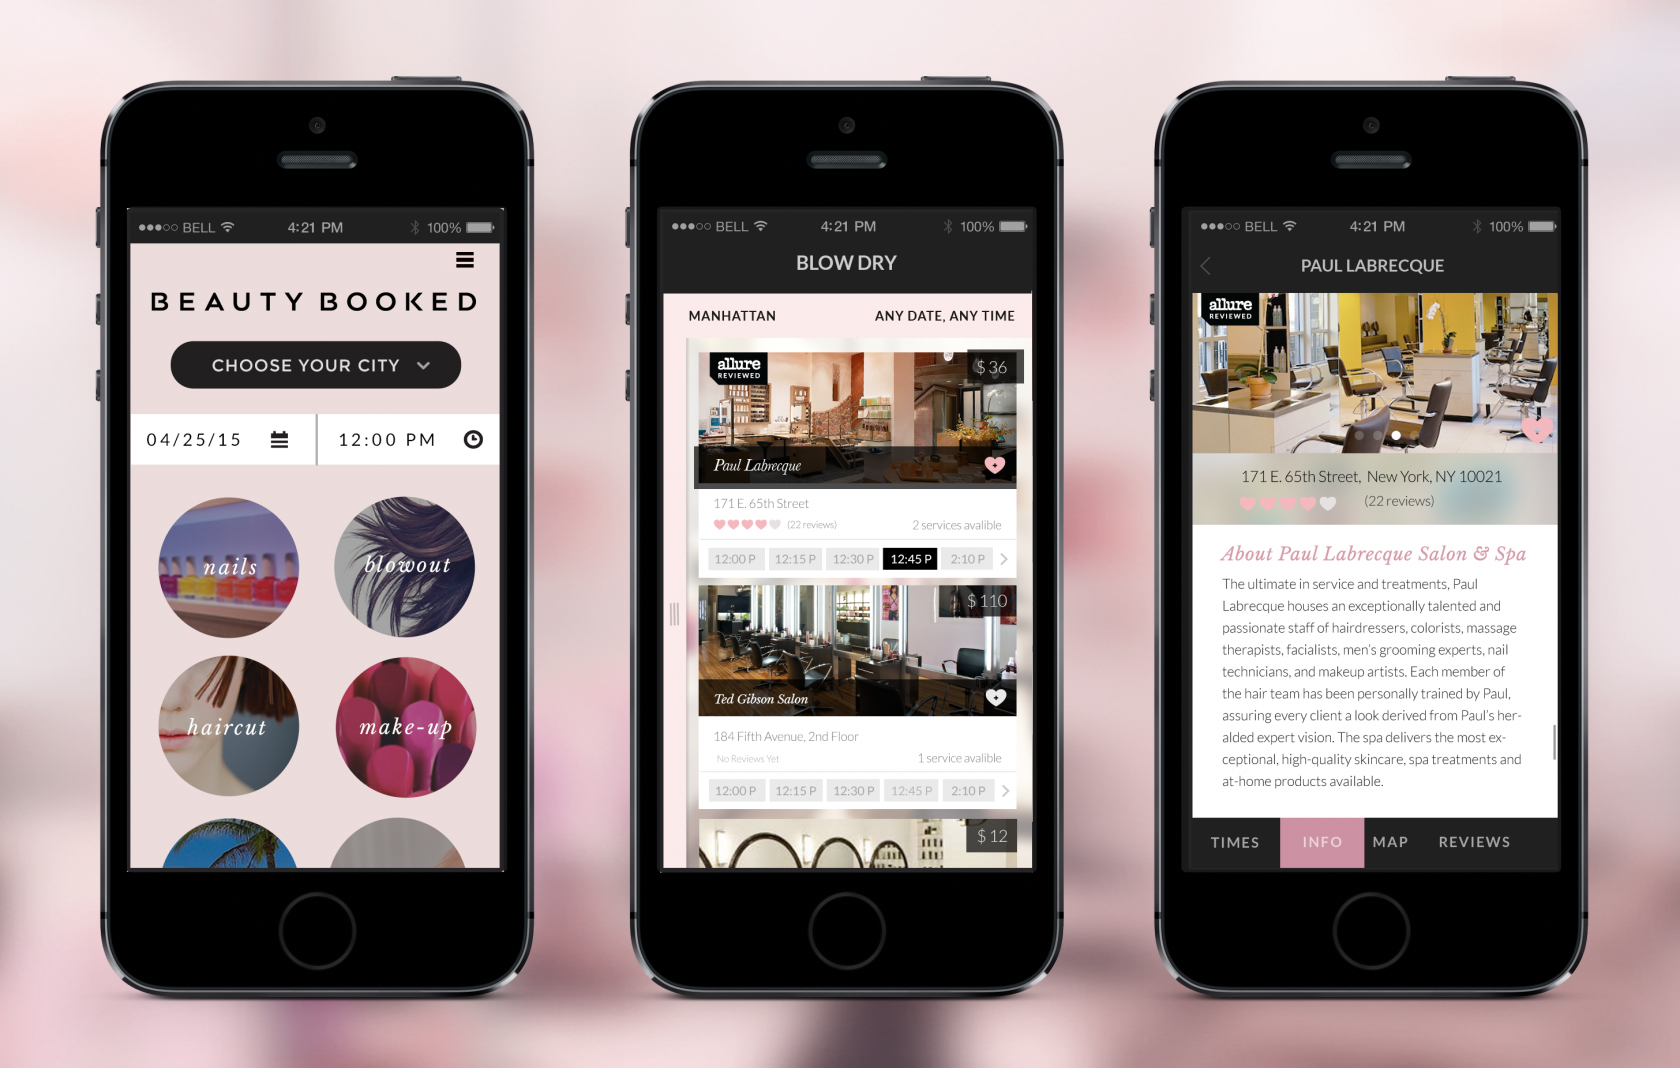 10 MUST-HAVE BEAUTY APPS TODAY